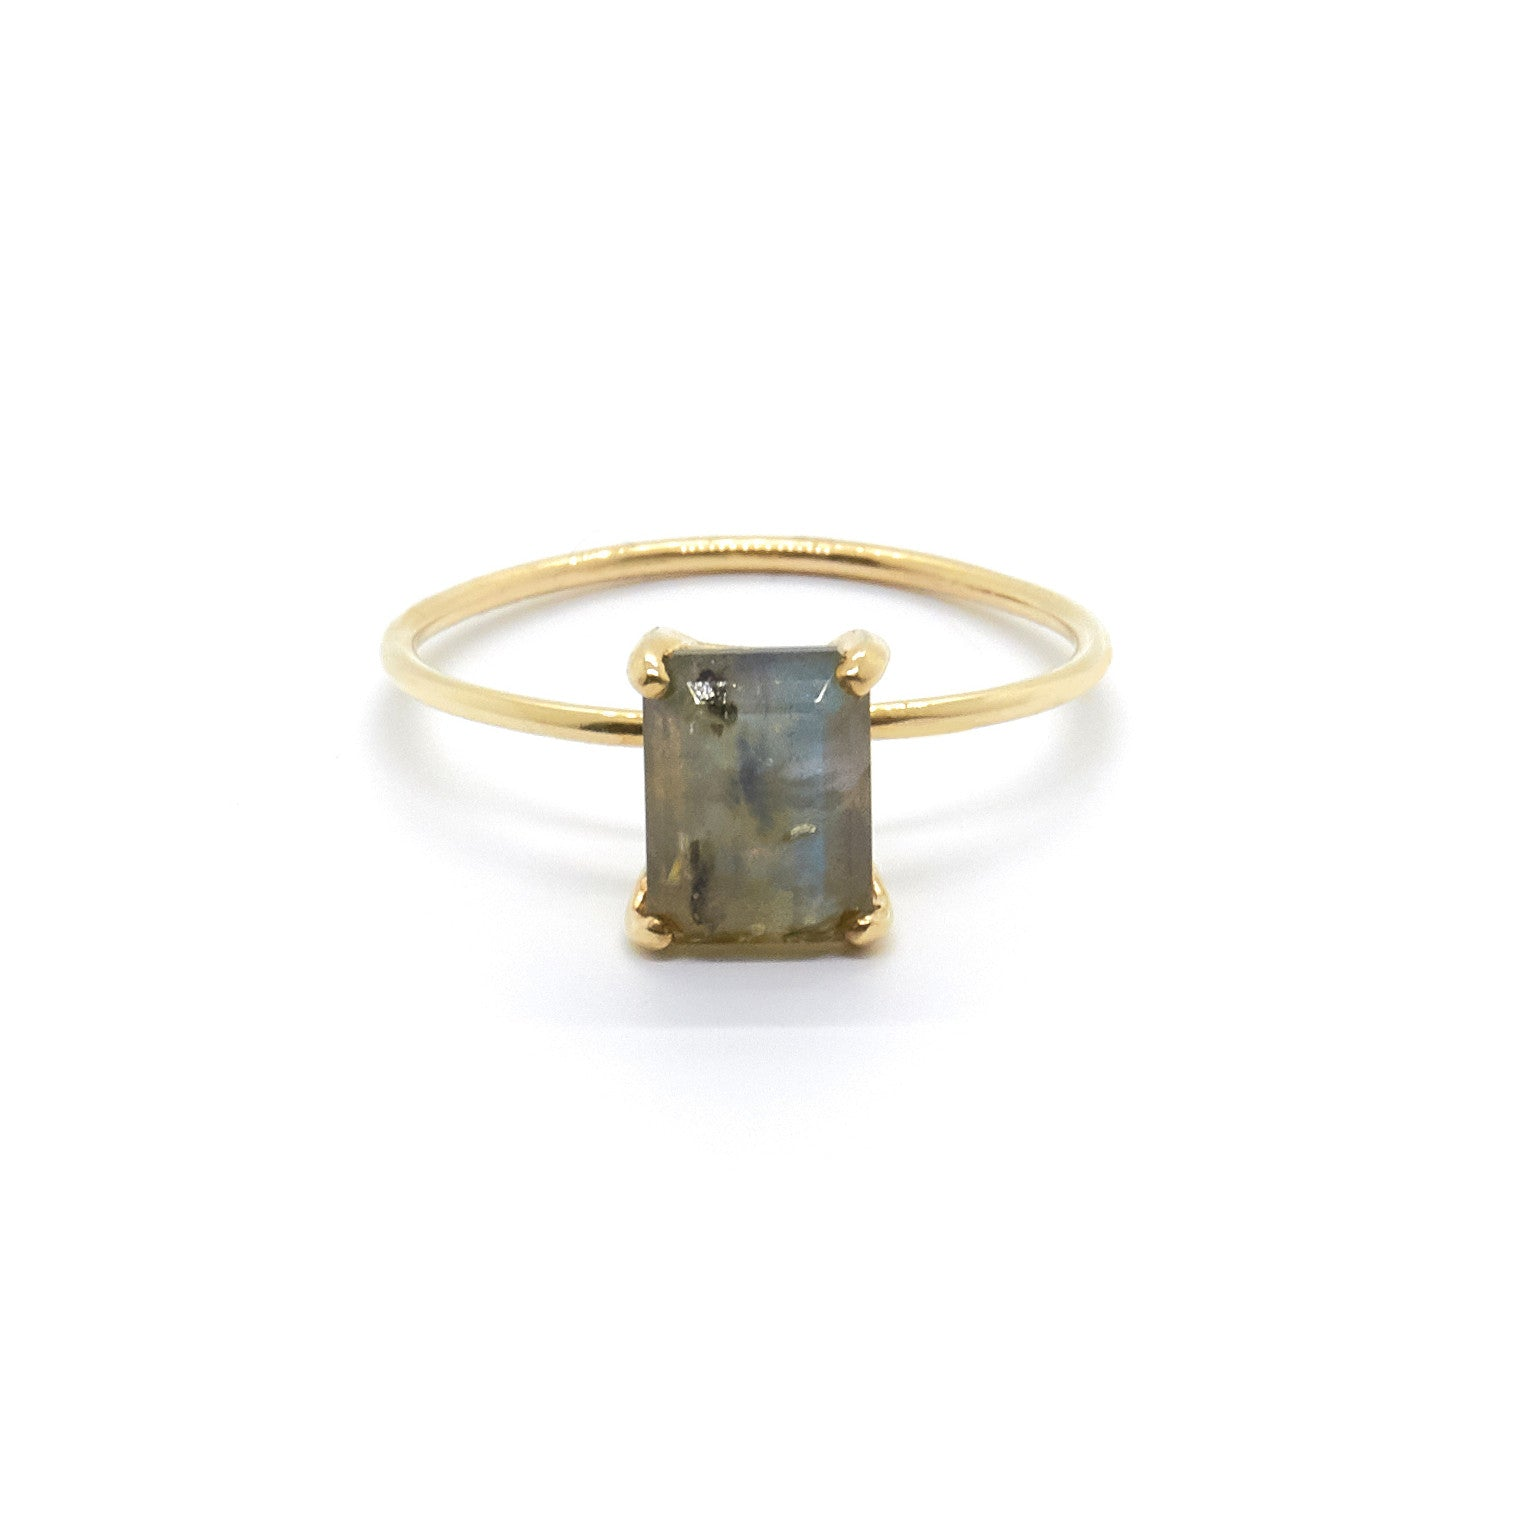 Emerald Cut Labradorite Ring